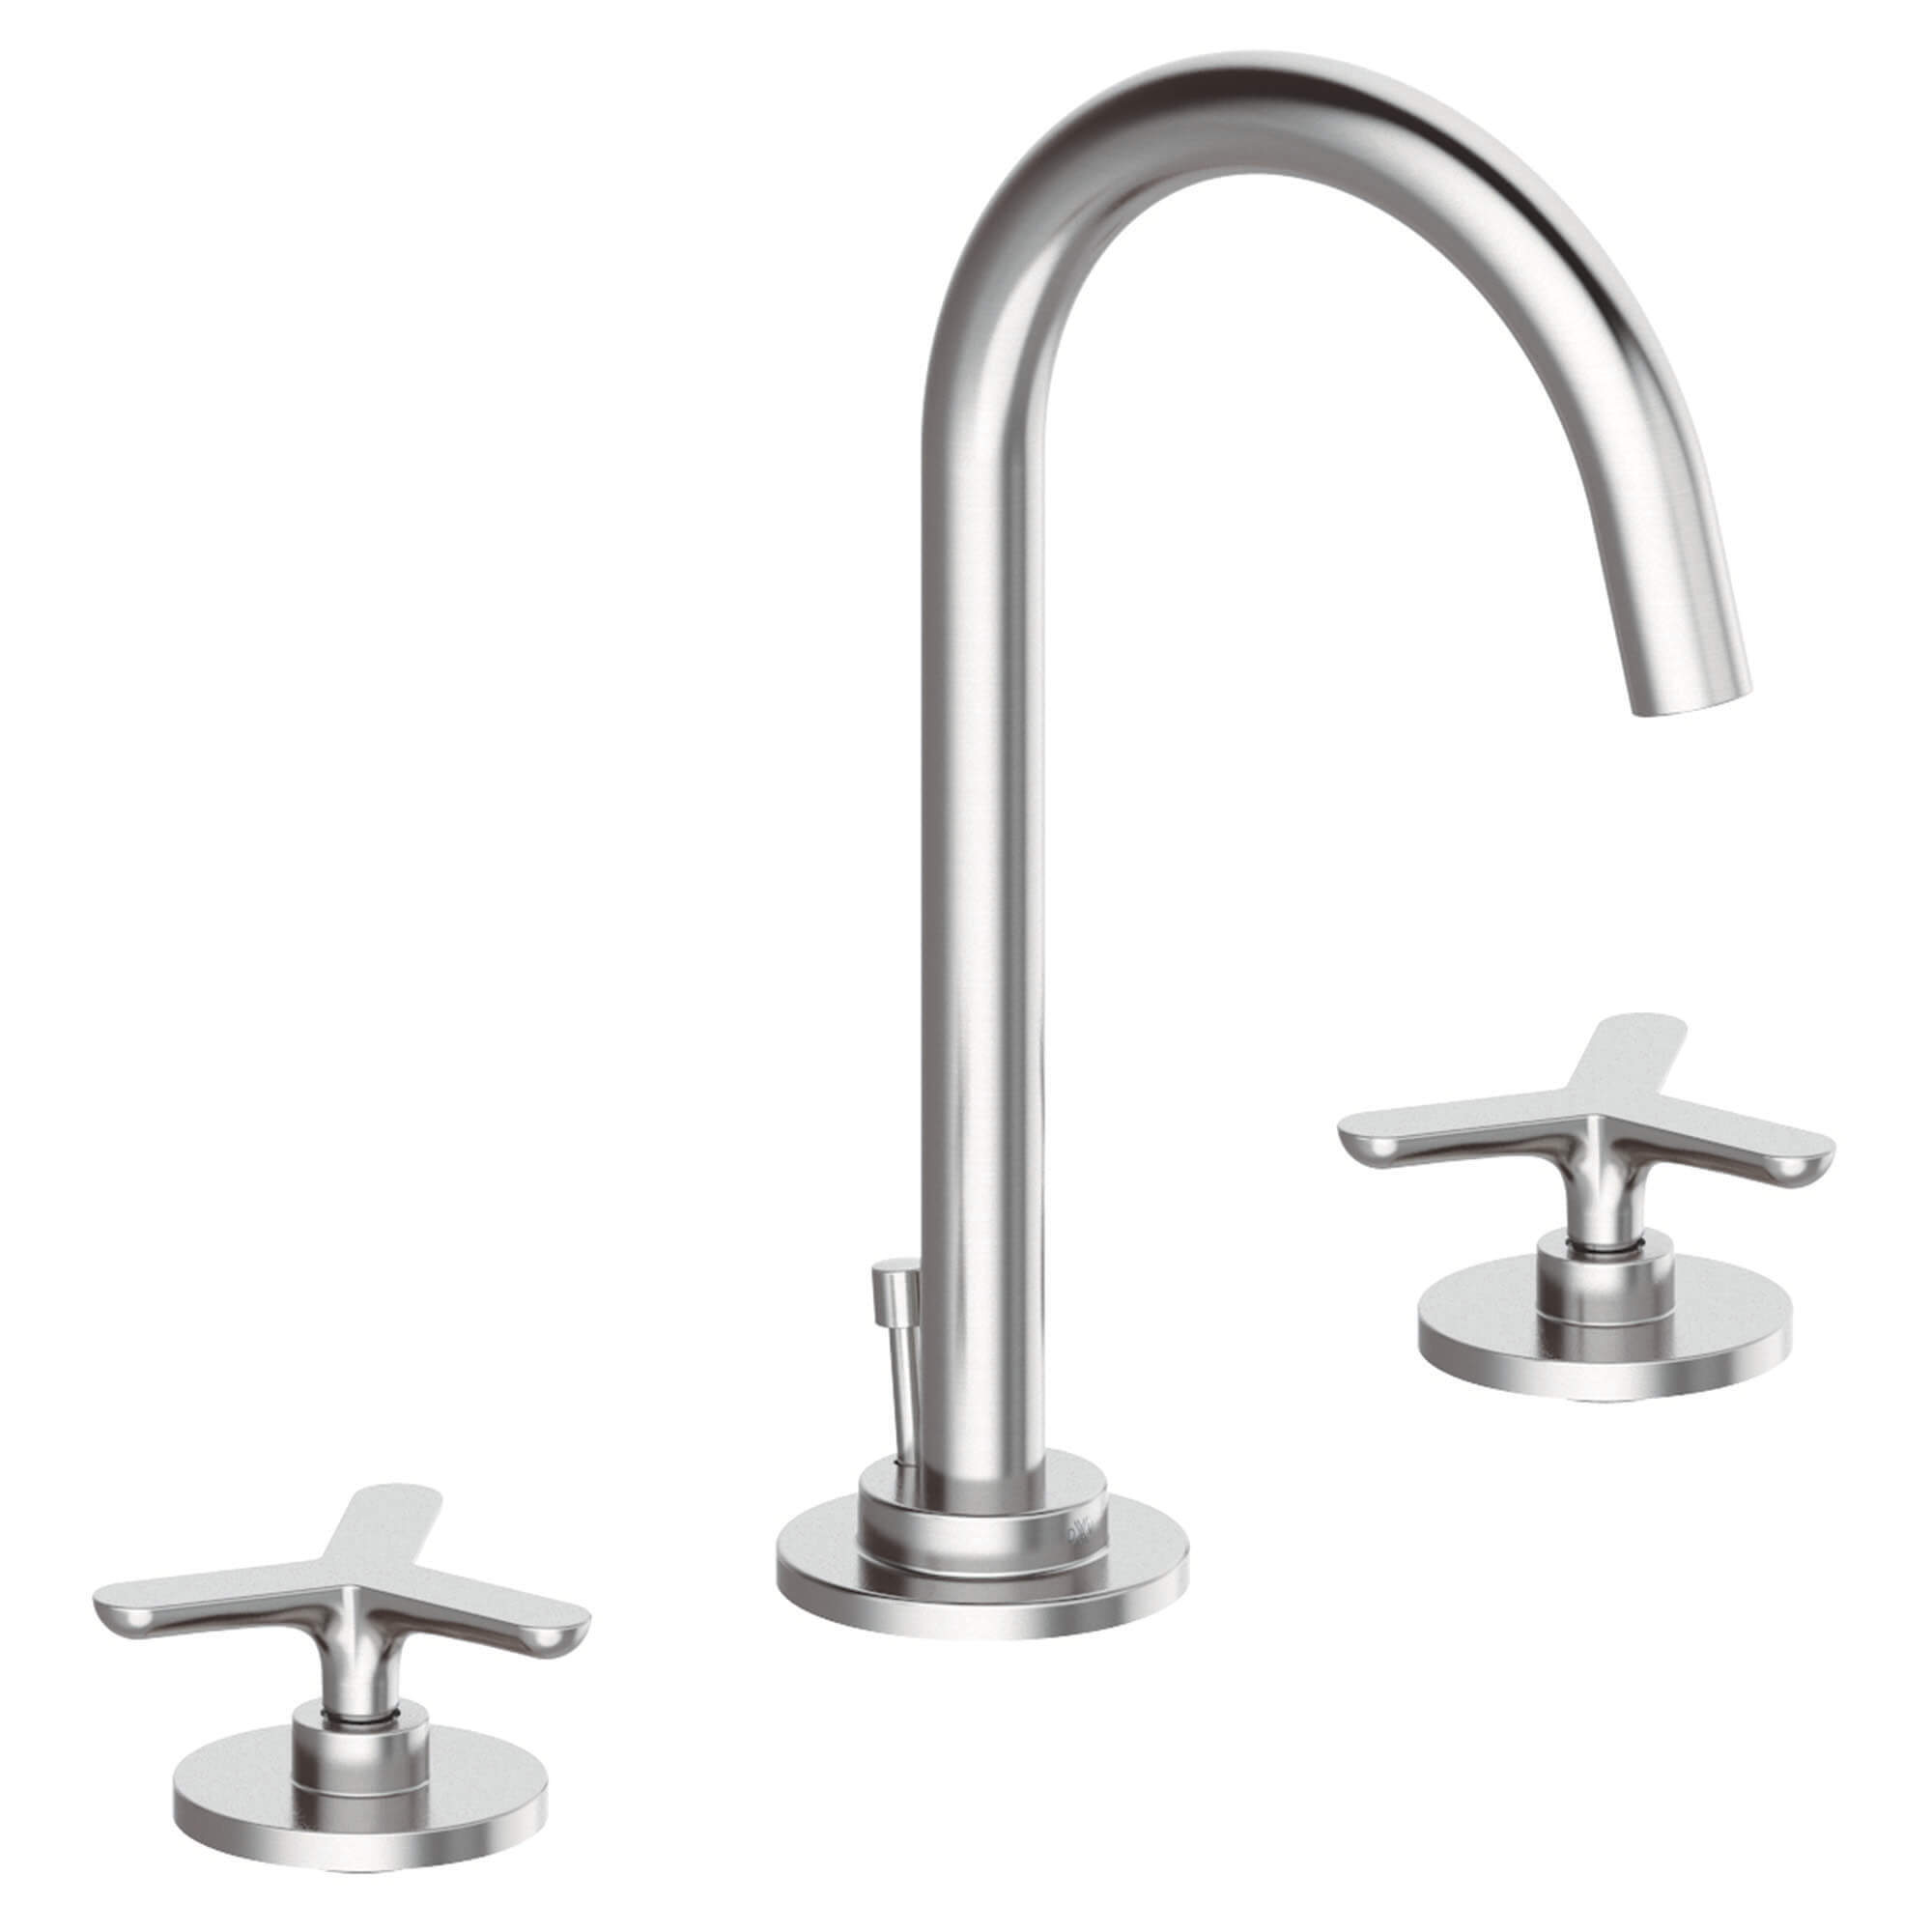 Percy Widespread Faucet with Tri-Spoke Handles